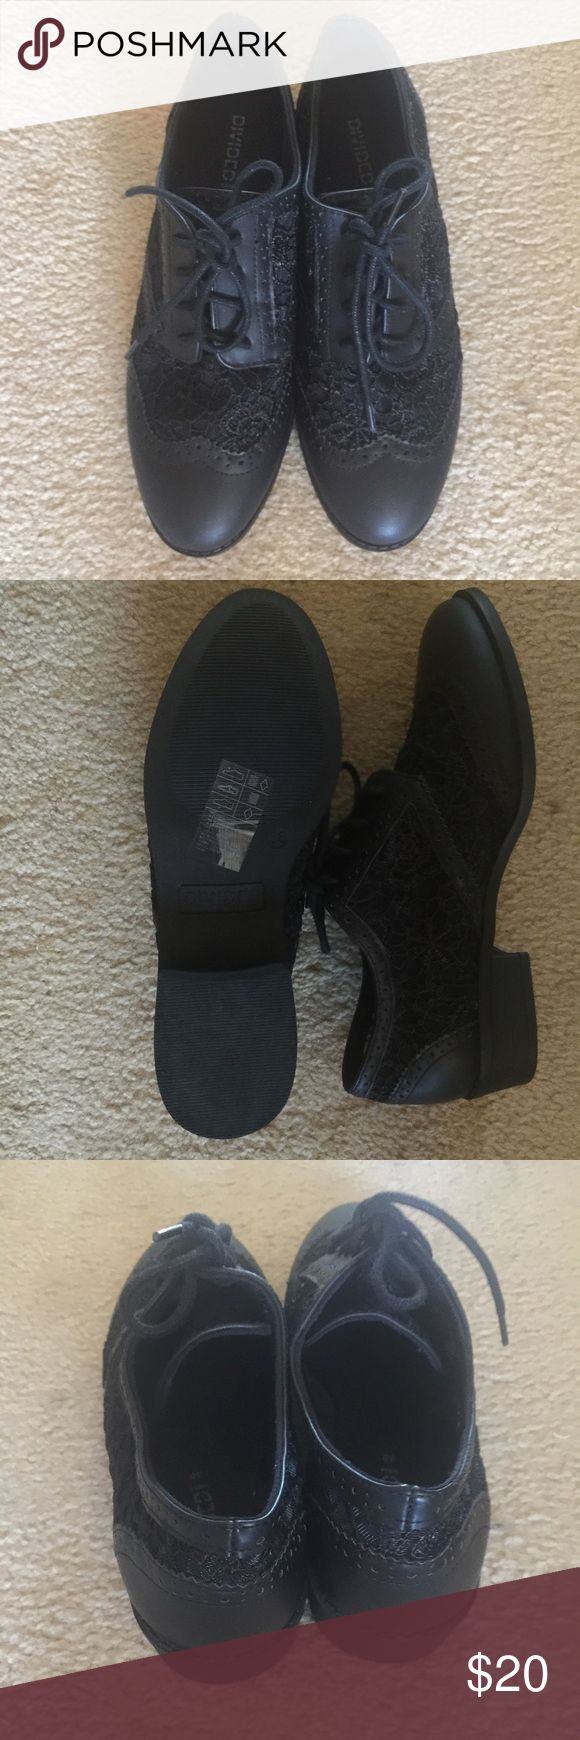 Black lace Oxford shoes. Brand new without tag really cute black lace oxfords. Size 8 by H&M ... Great with skinny jeans. Lace all over the shoe. H&M Shoes Flats & Loafers